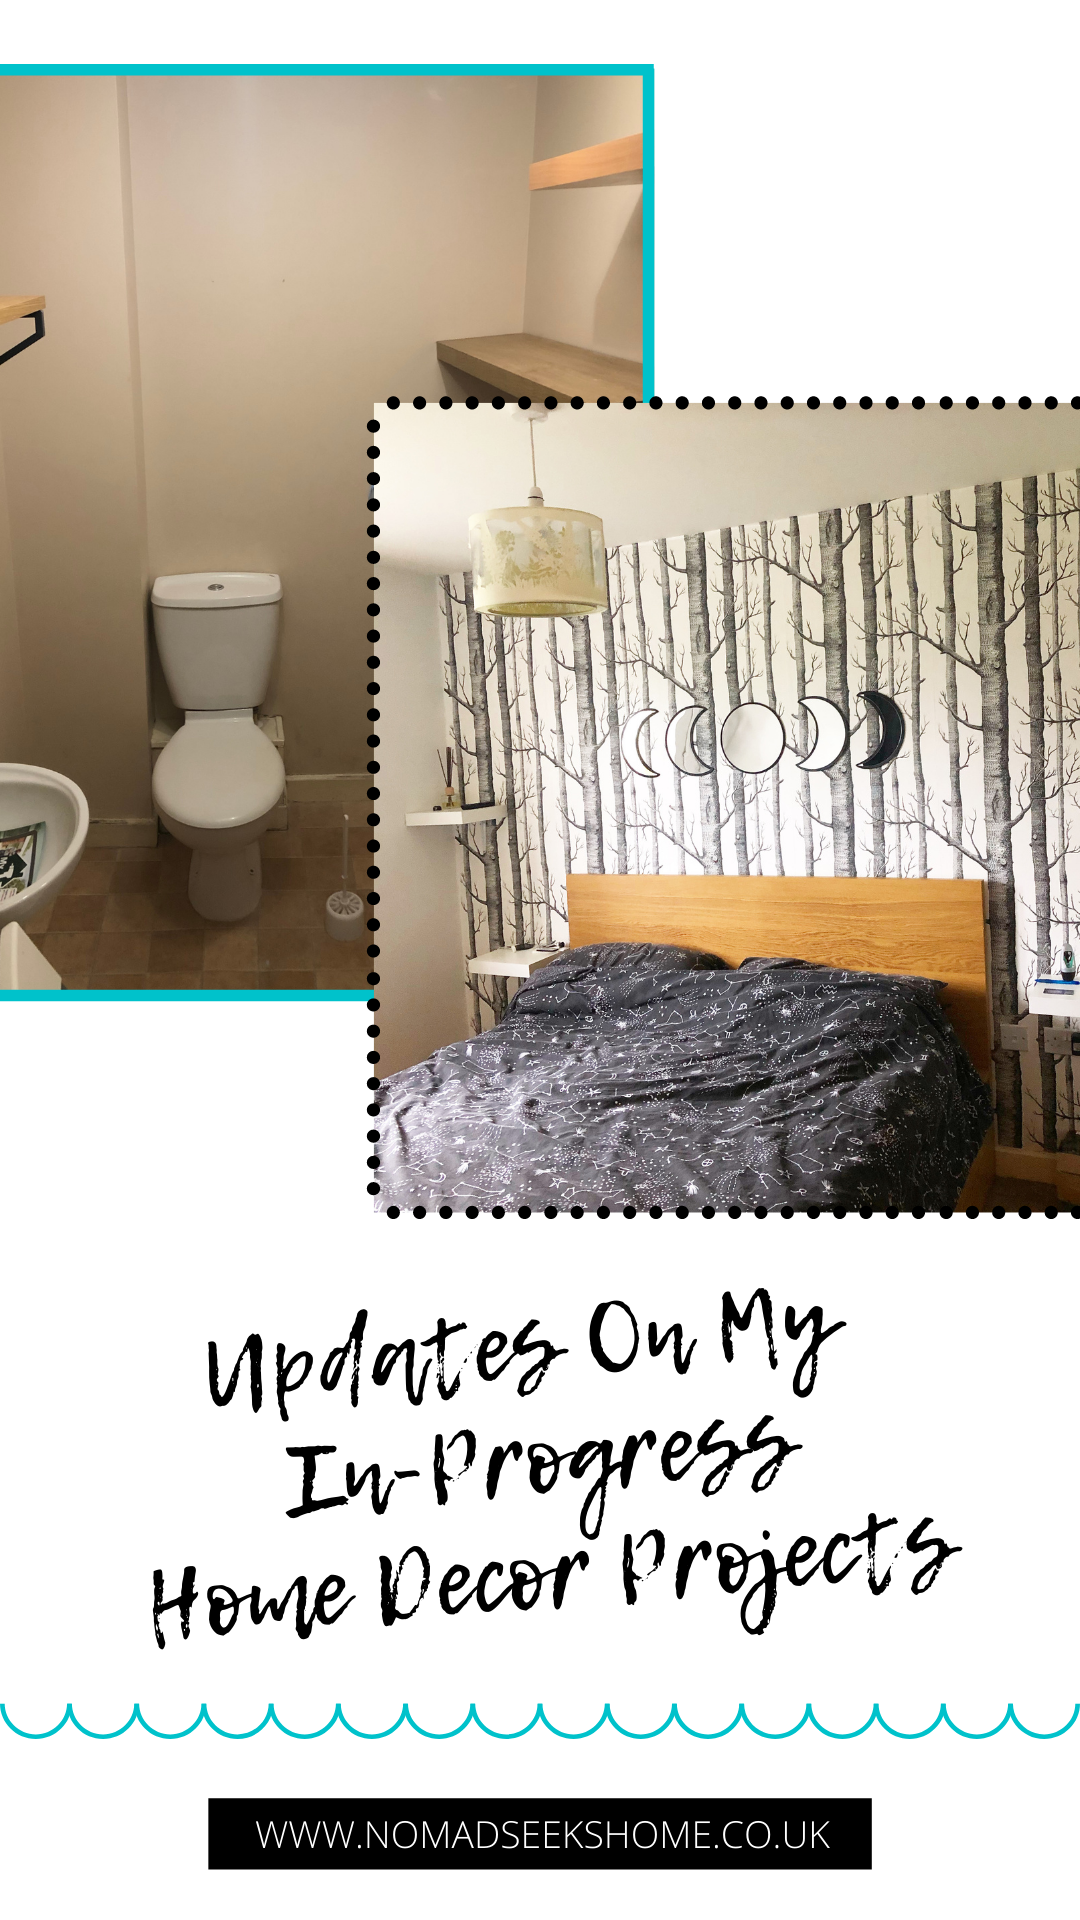 Updates On My In-Progress Home Decor Projects